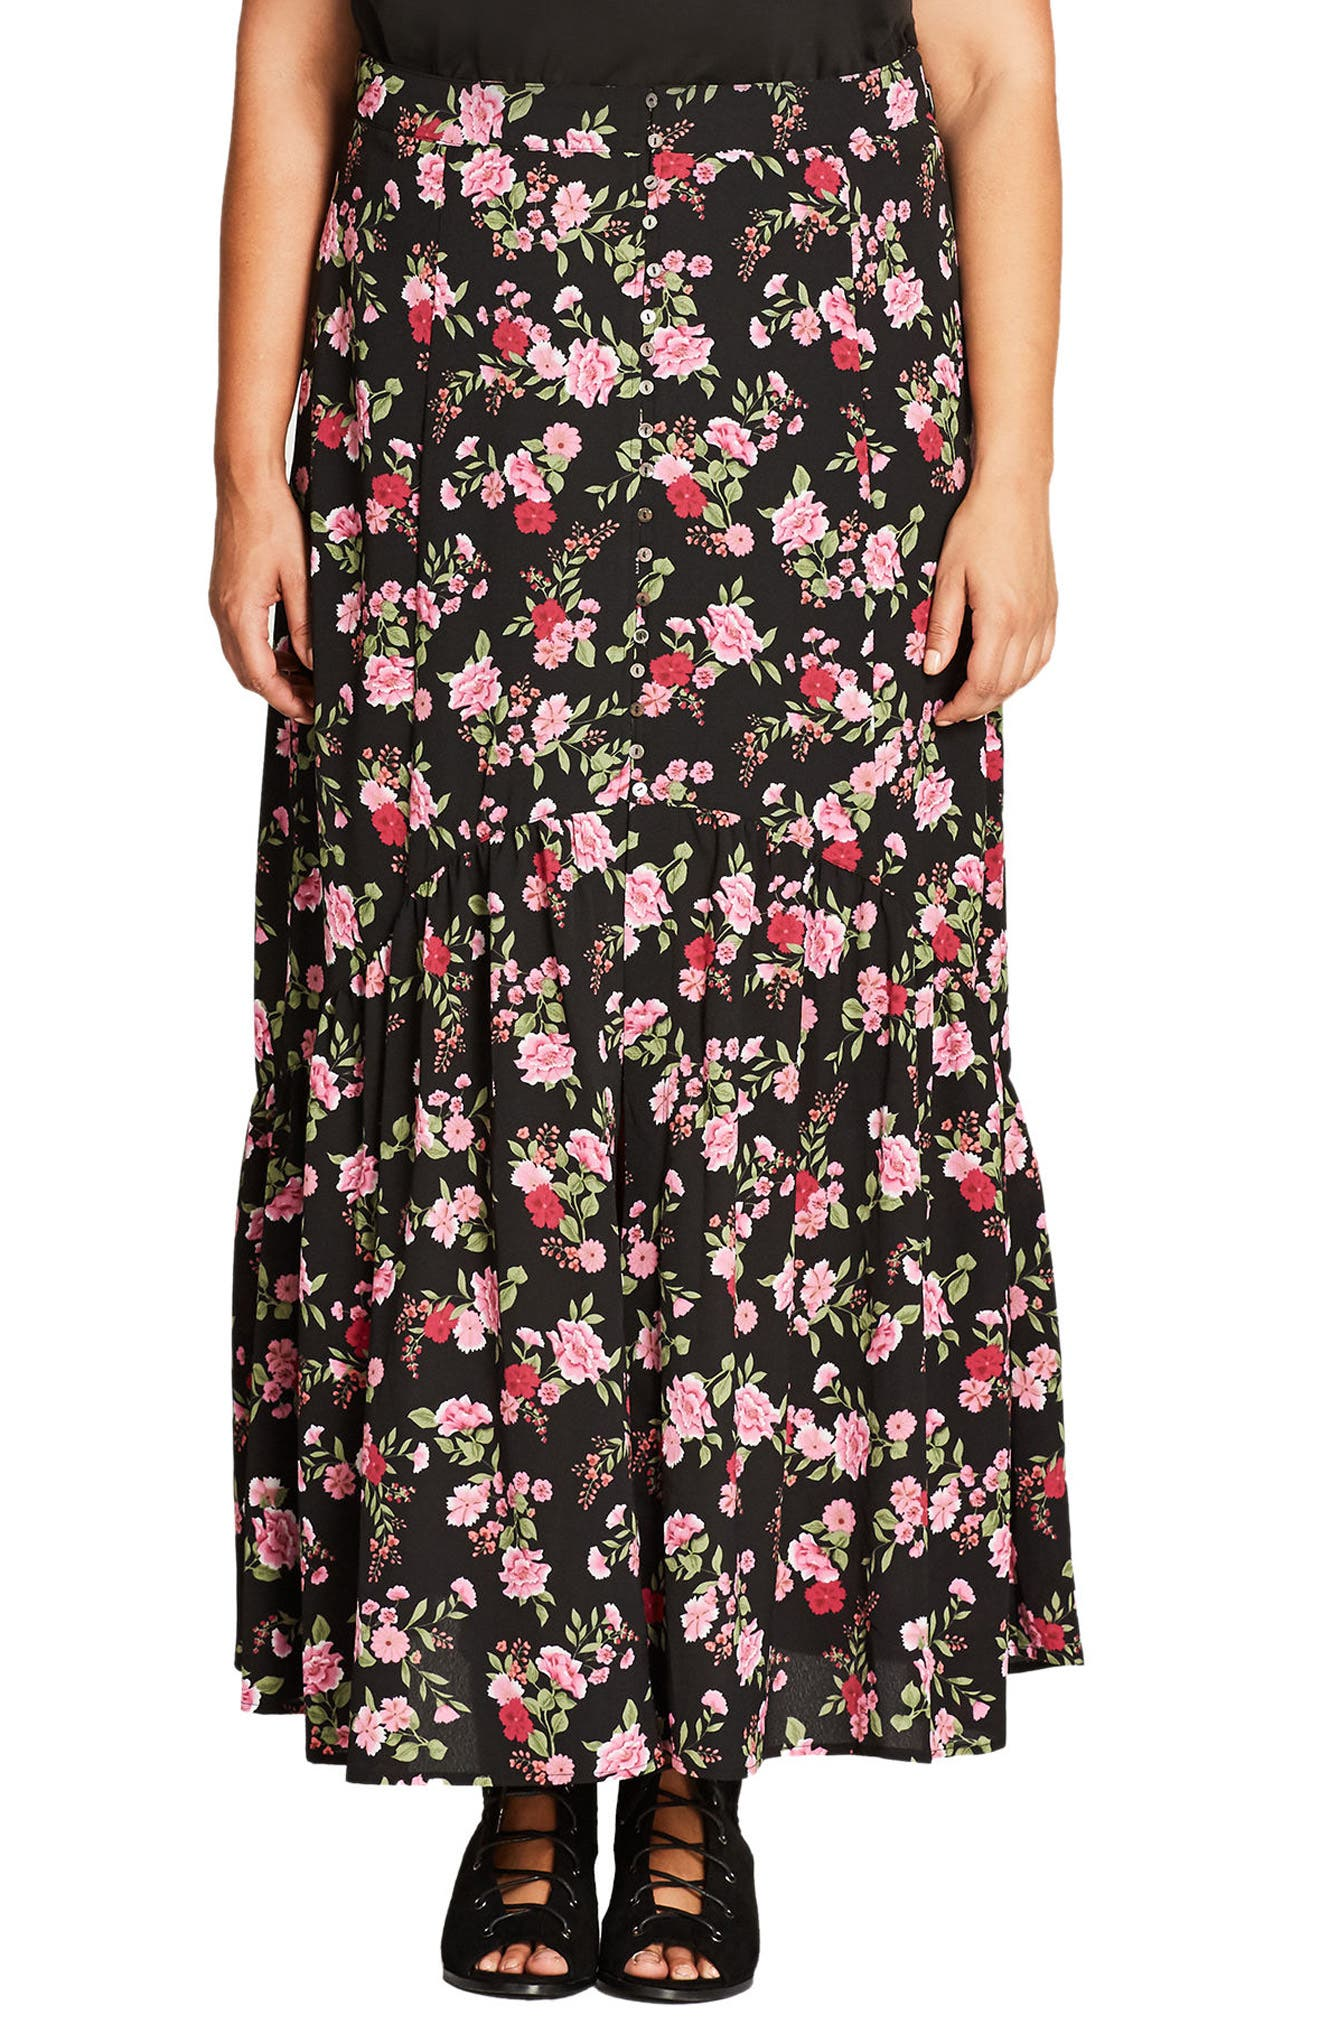 Alternate Image 1 Selected - City Chic Free Spirit Maxi Skirt (Plus Size)